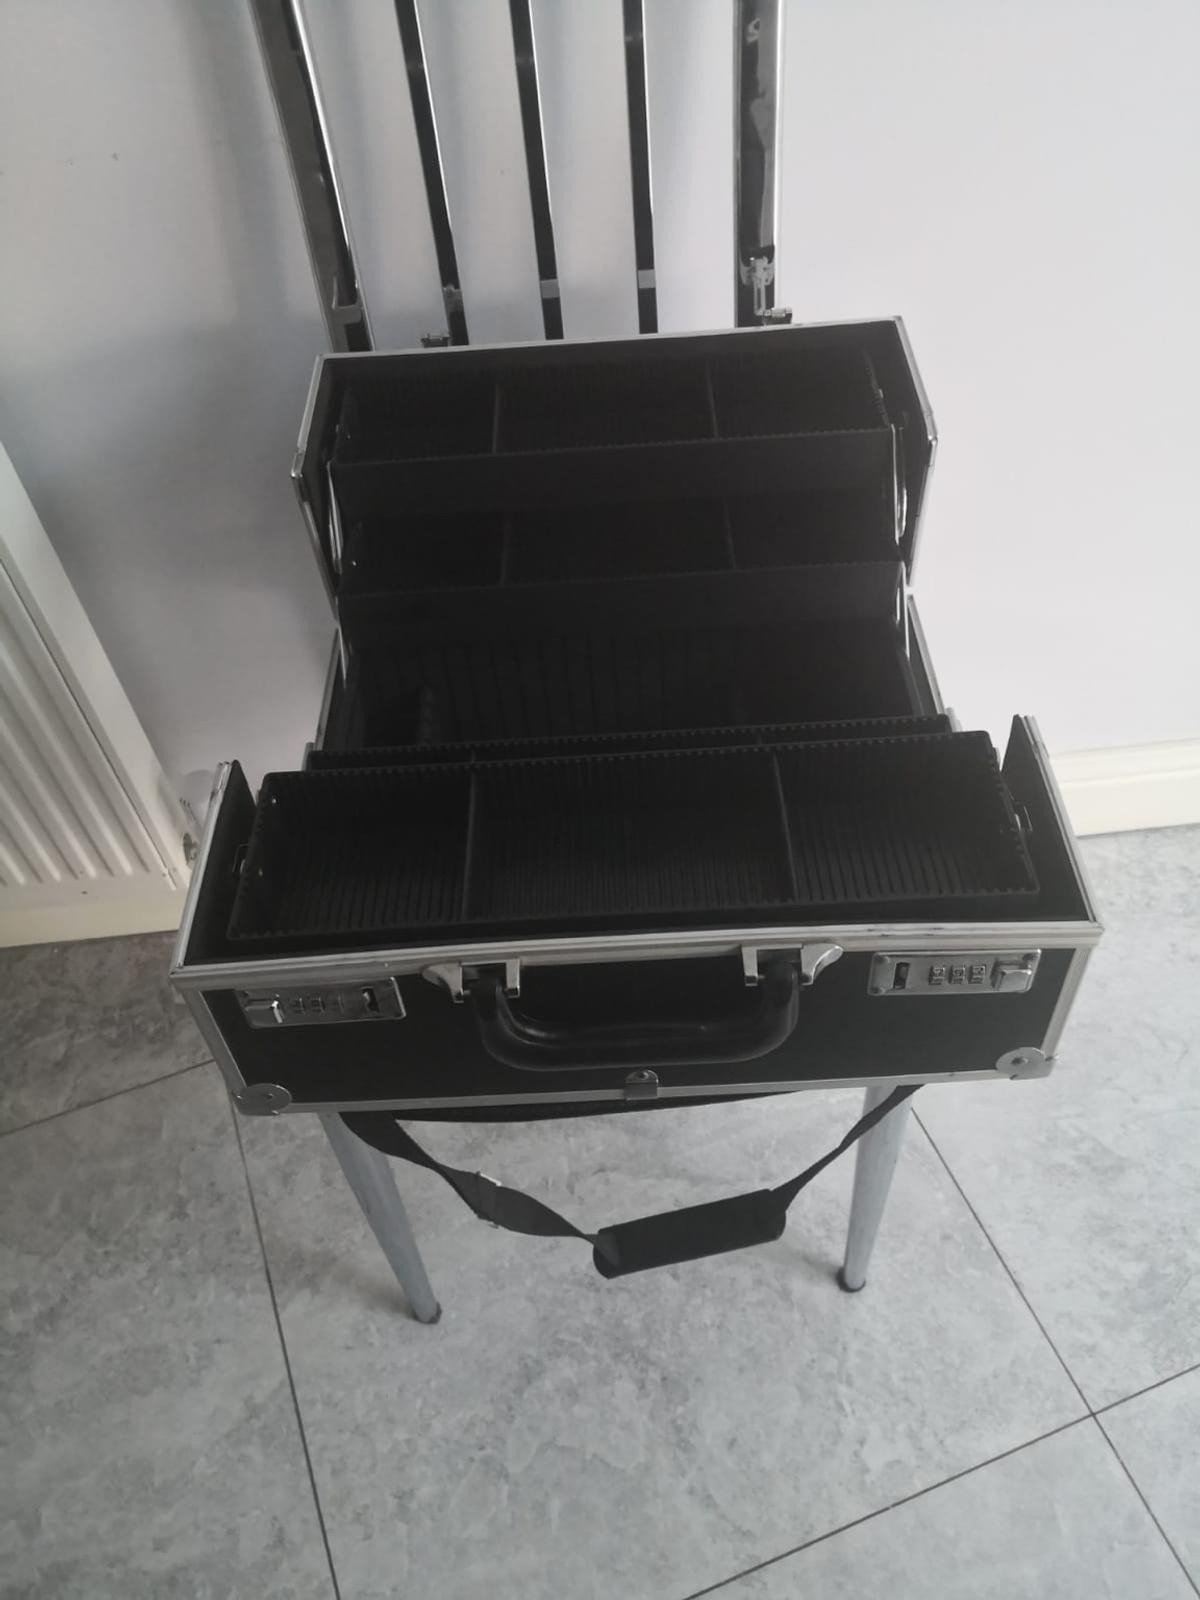 Cosmetic case in good condition with locking code